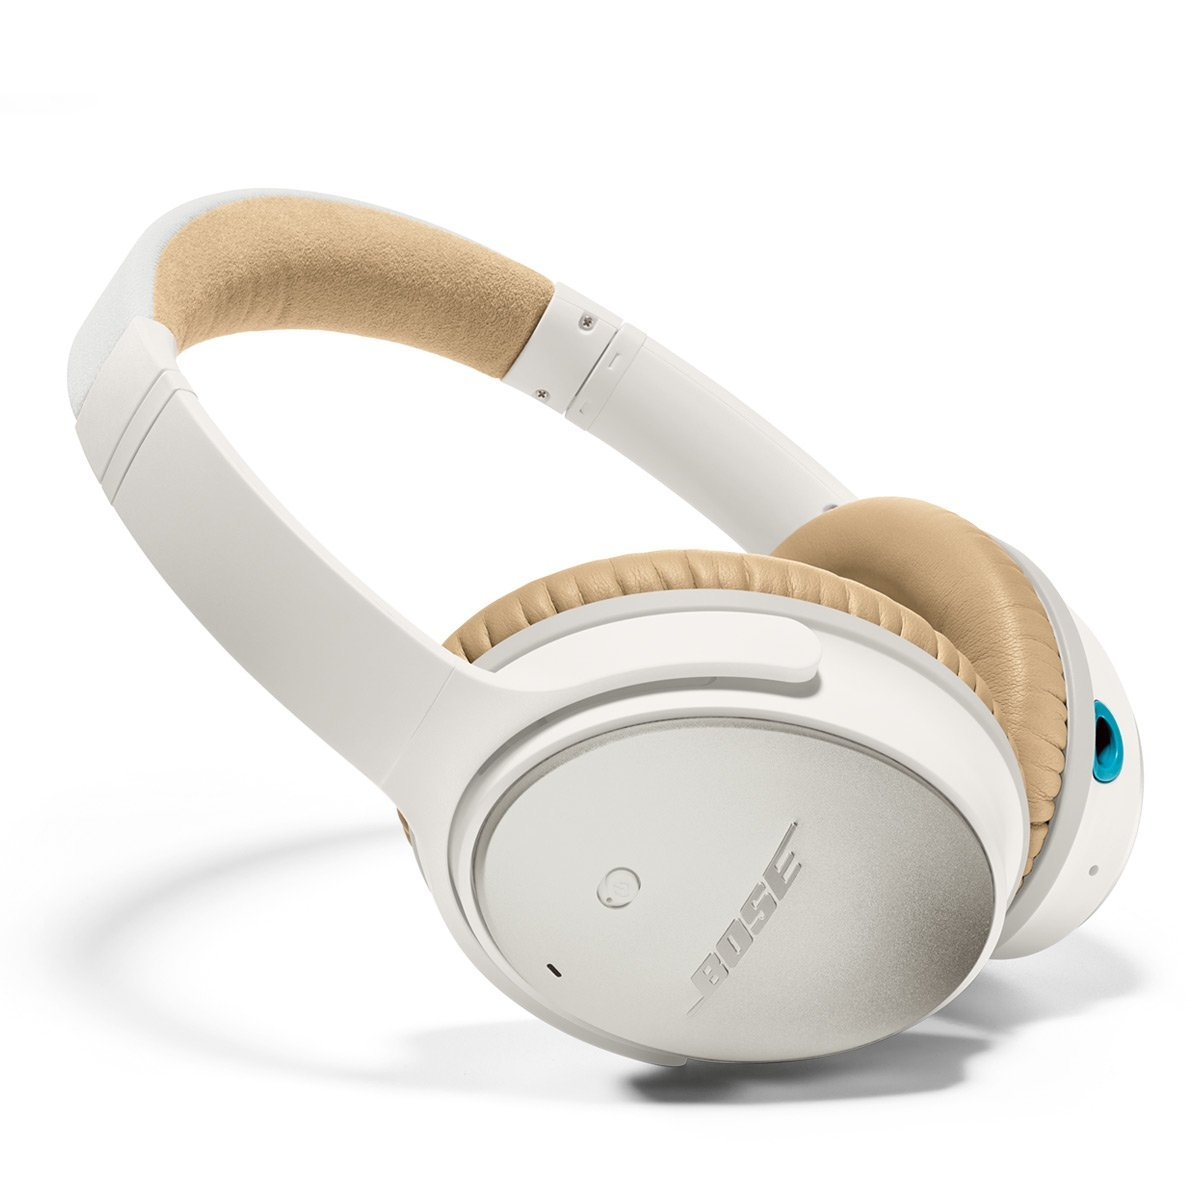 Bose QuietComfort 25 Acoustic Noise Cancelling Headphones for Samsung and Android Devices, White